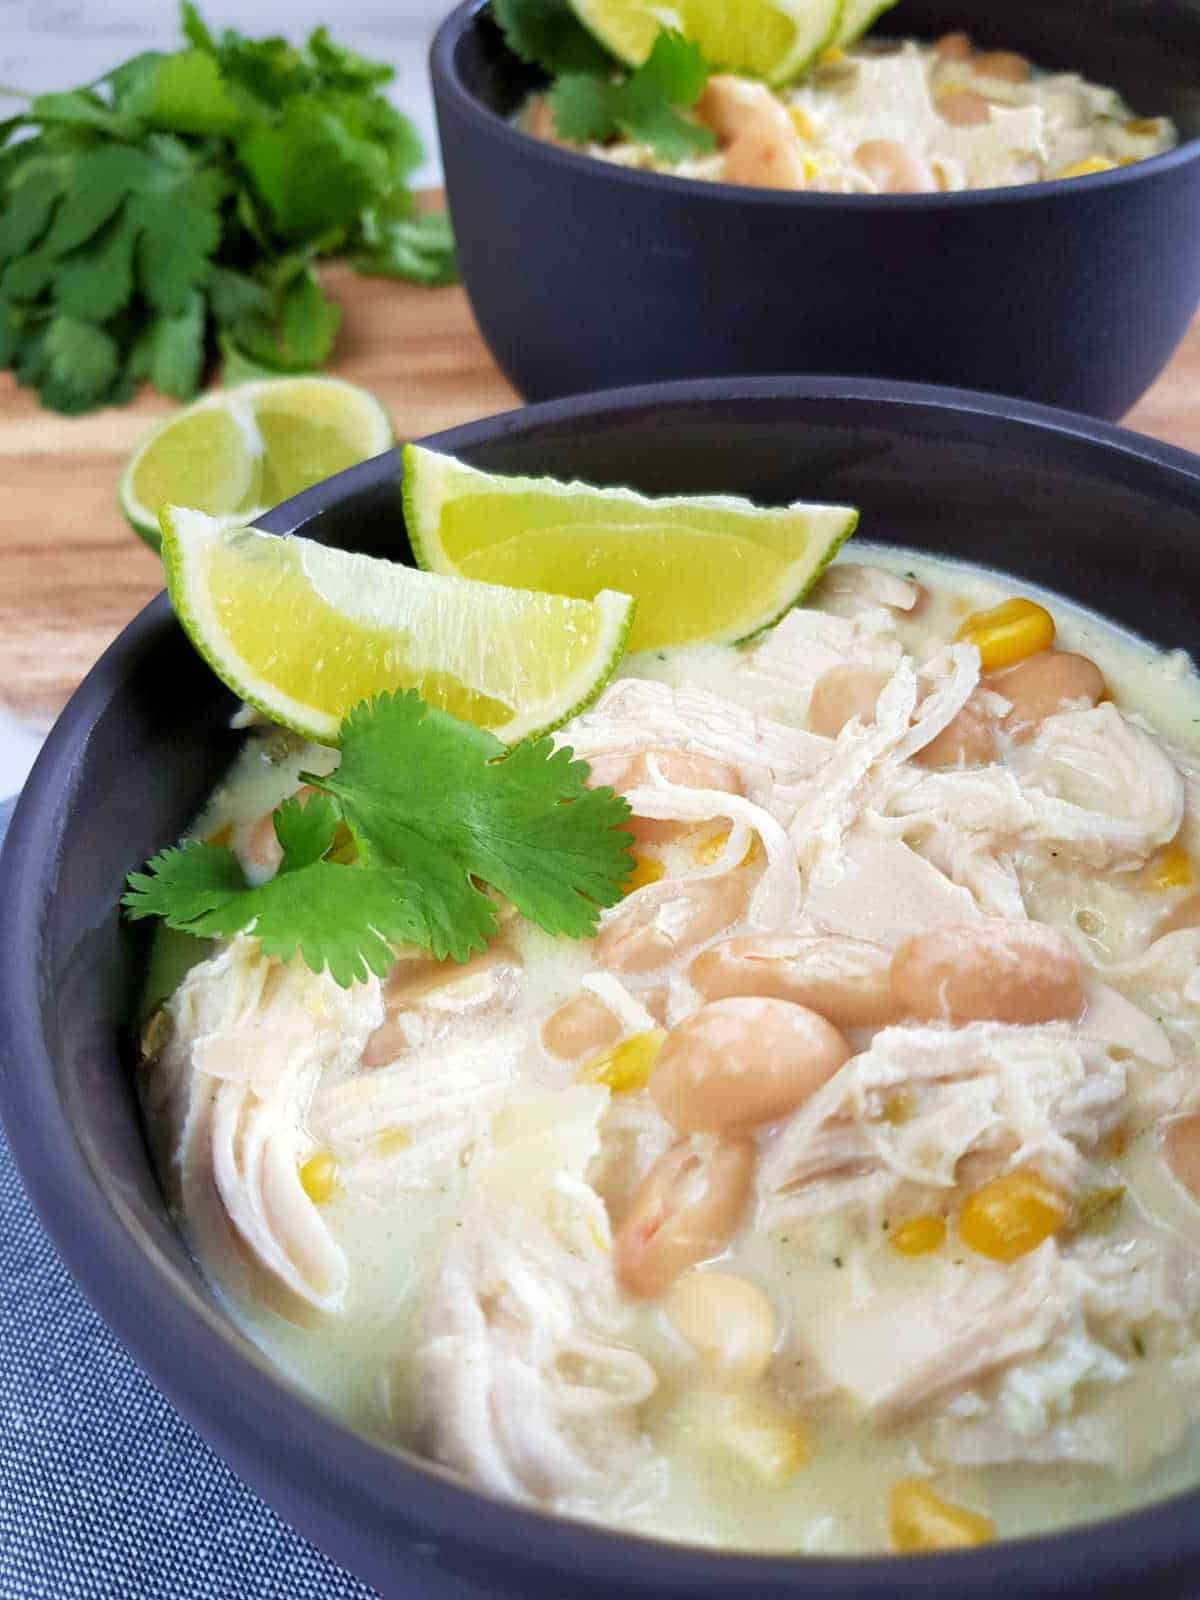 White chicken chili in gray bowls with lime and herbs on top,